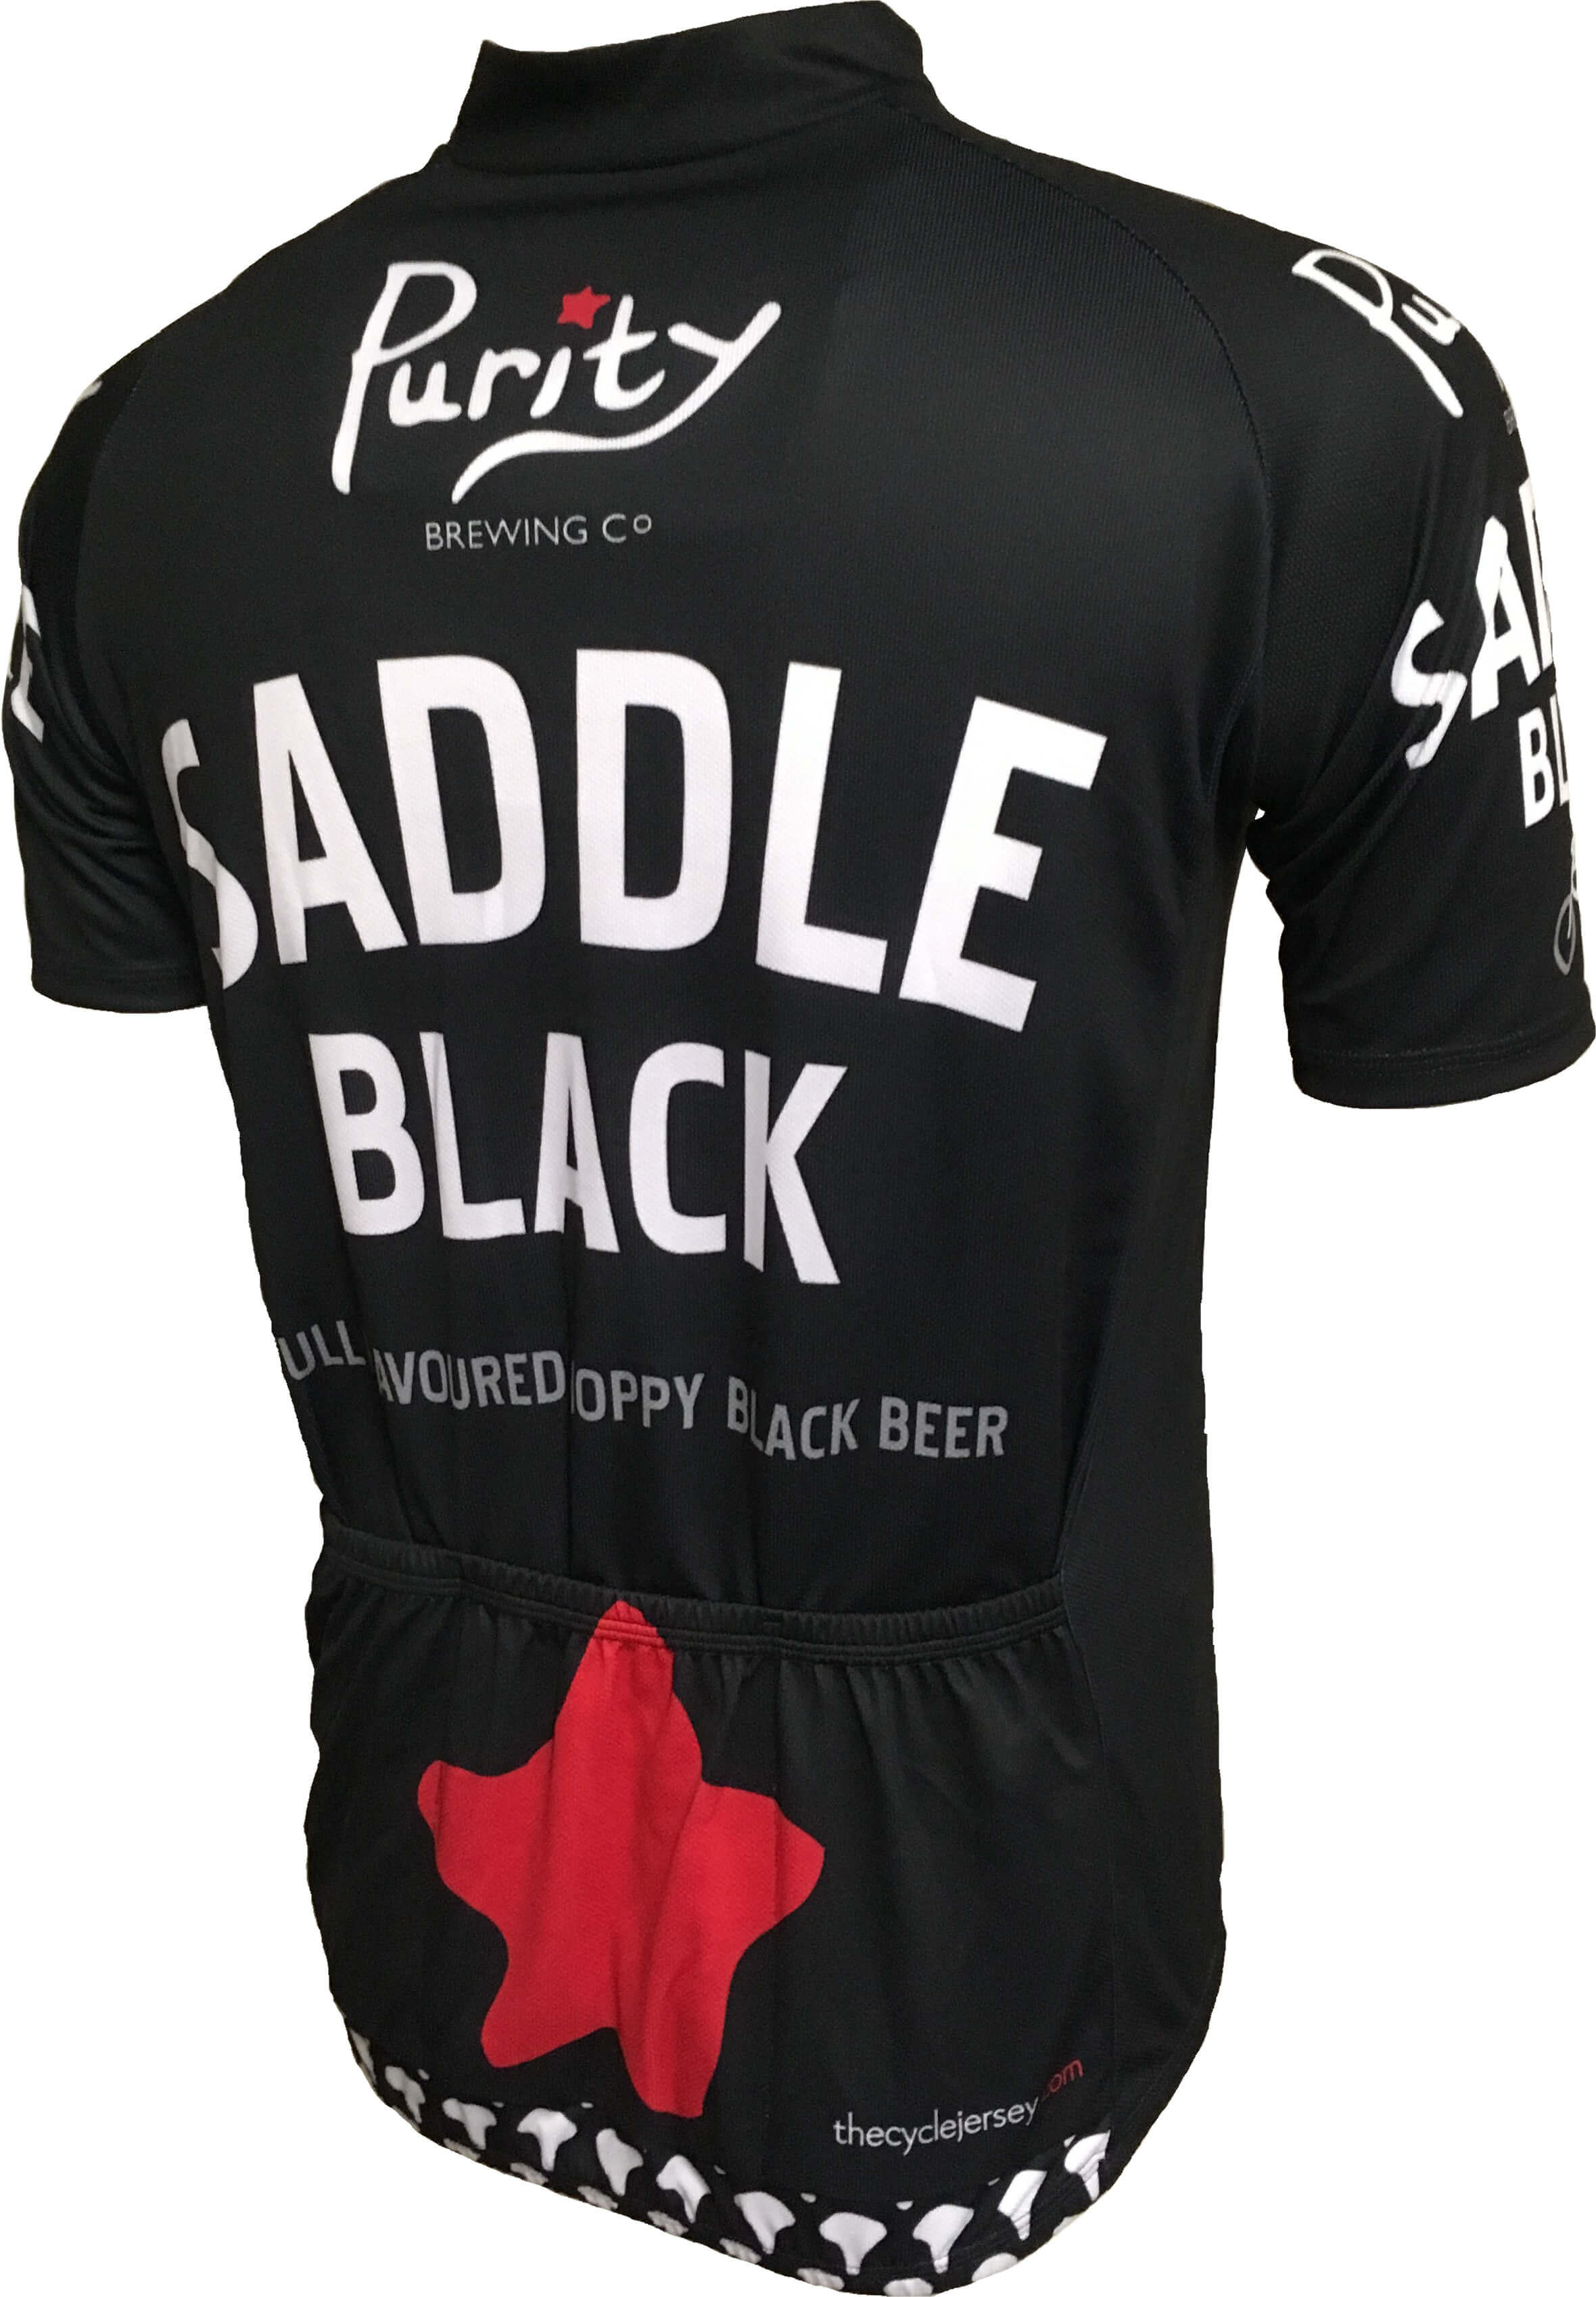 Purity Saddle Black Road Jersey Back